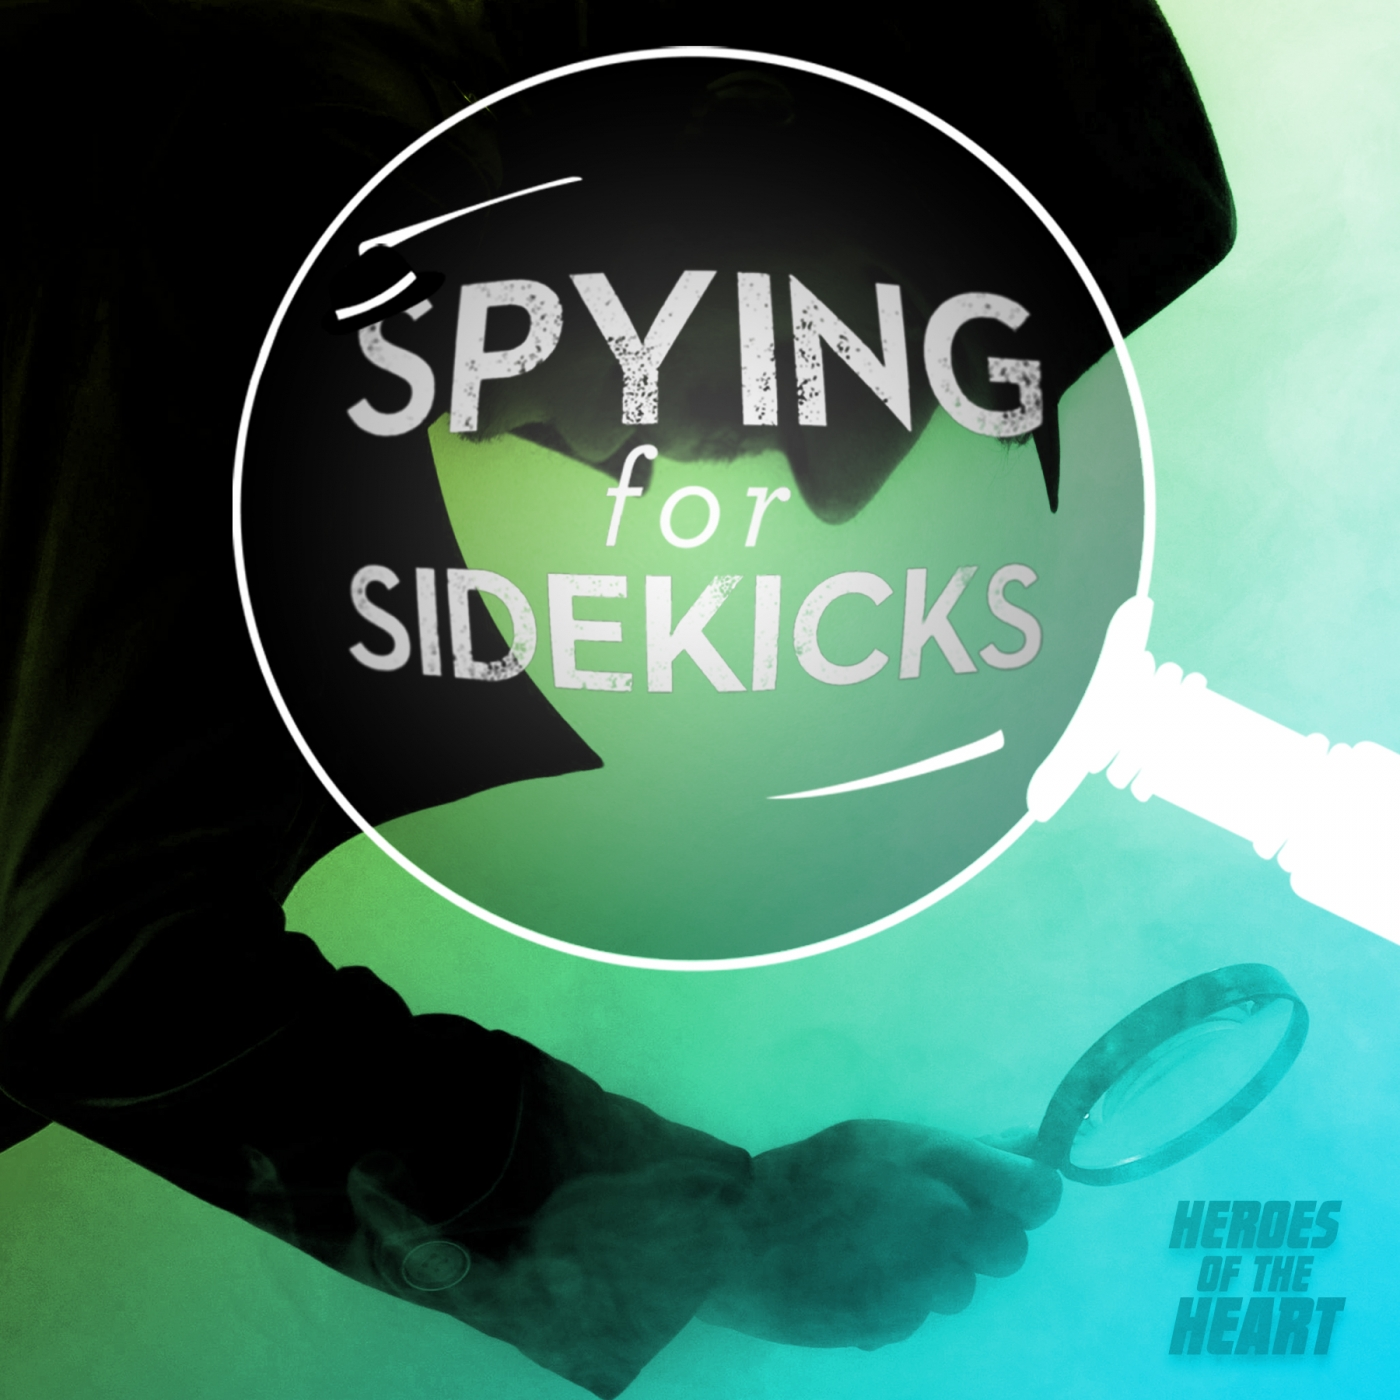 Heroes of the Heart - Spying for Sidekicks